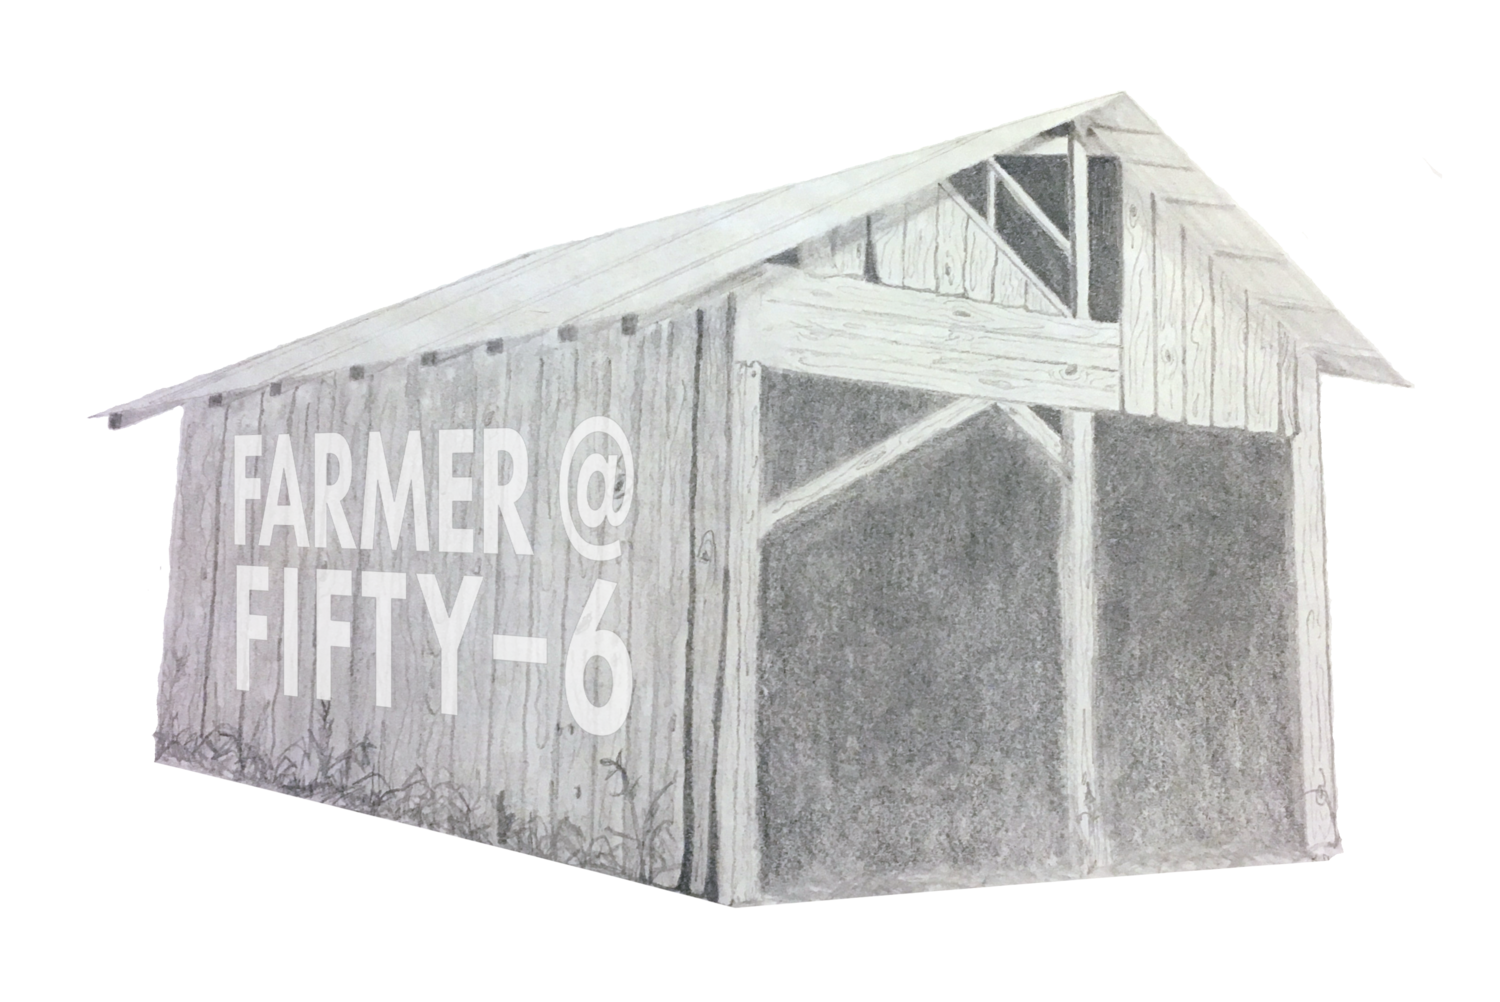 Farmer@Fifty-6